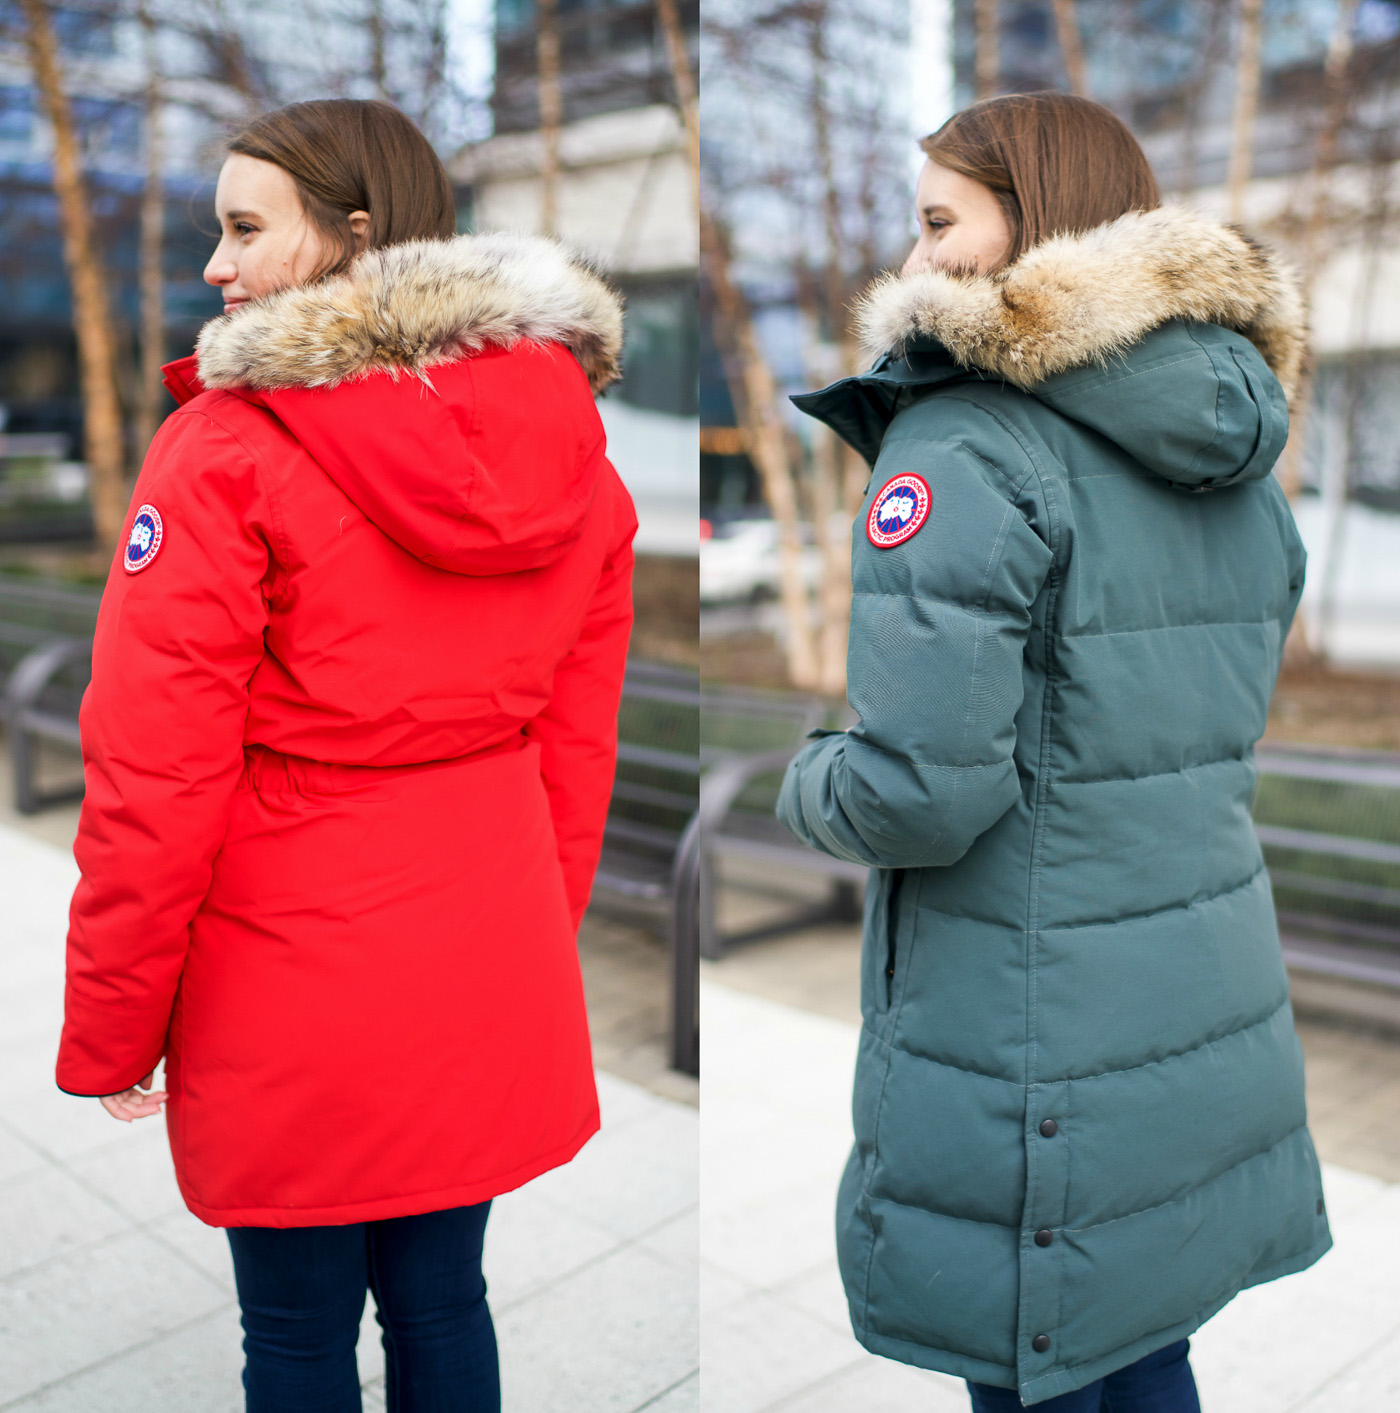 is the canada goose logo always on the left